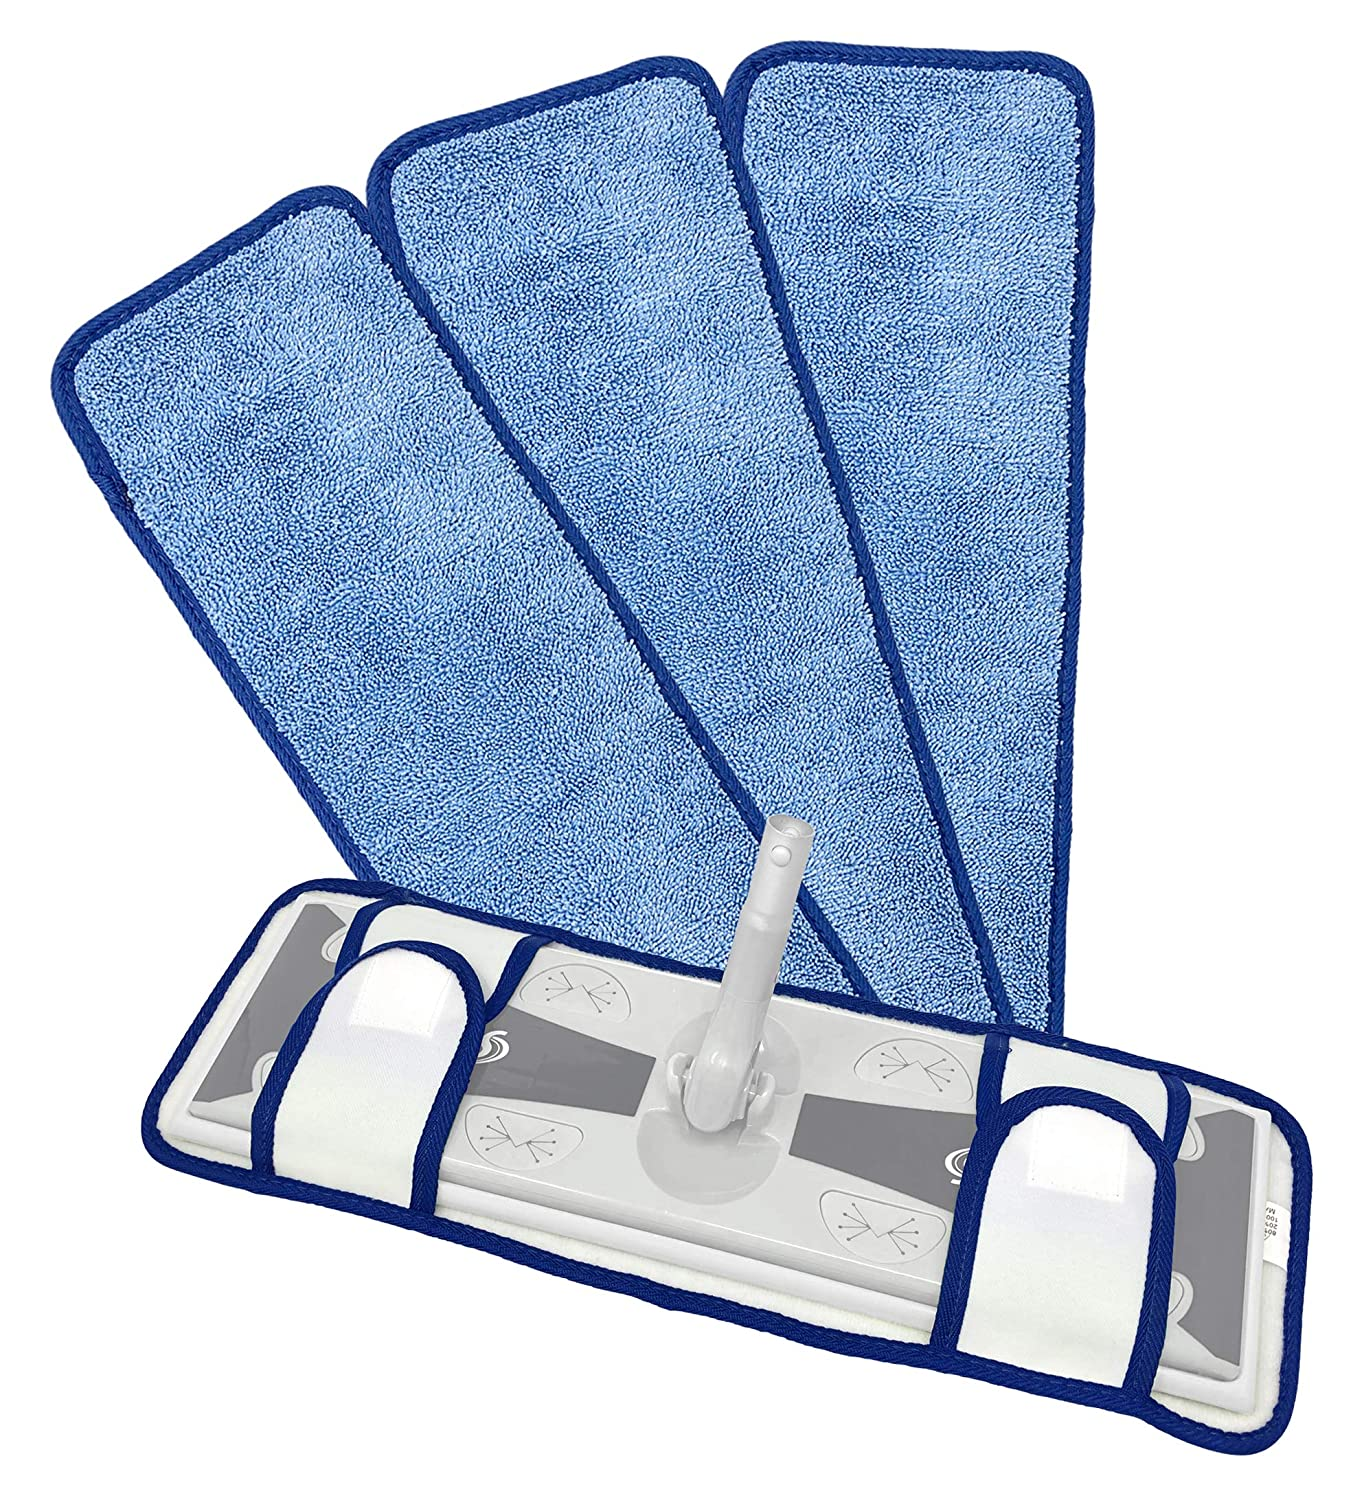 """Xanitize 18"""" Microfiber Mop Pads with Straps 3-pack (X-Large)"""